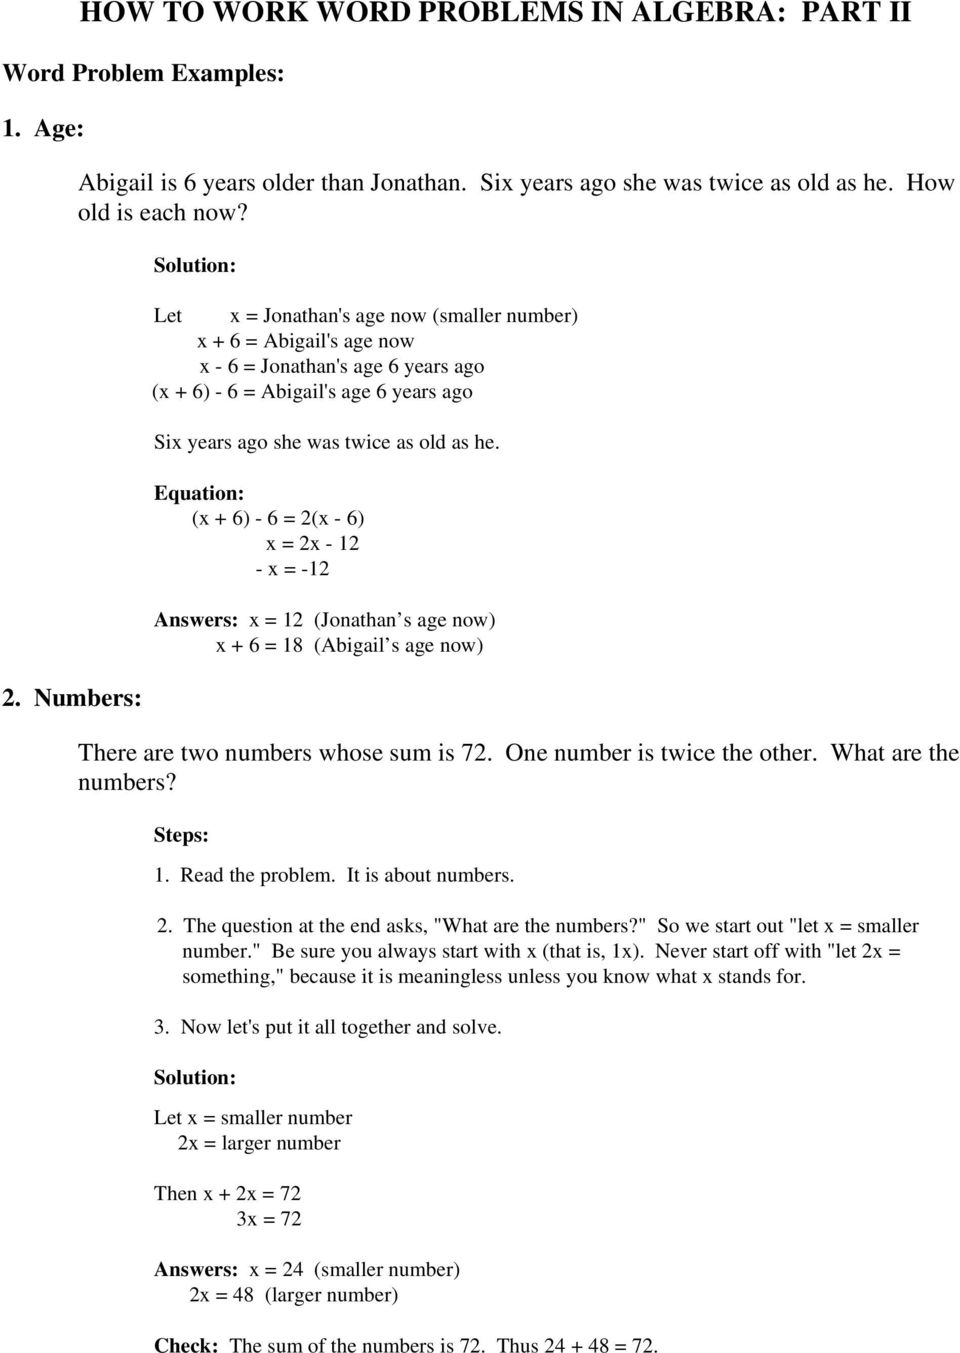 worksheet Age Word Problems Worksheet age word problems worksheet more addition and algebra pdf college word